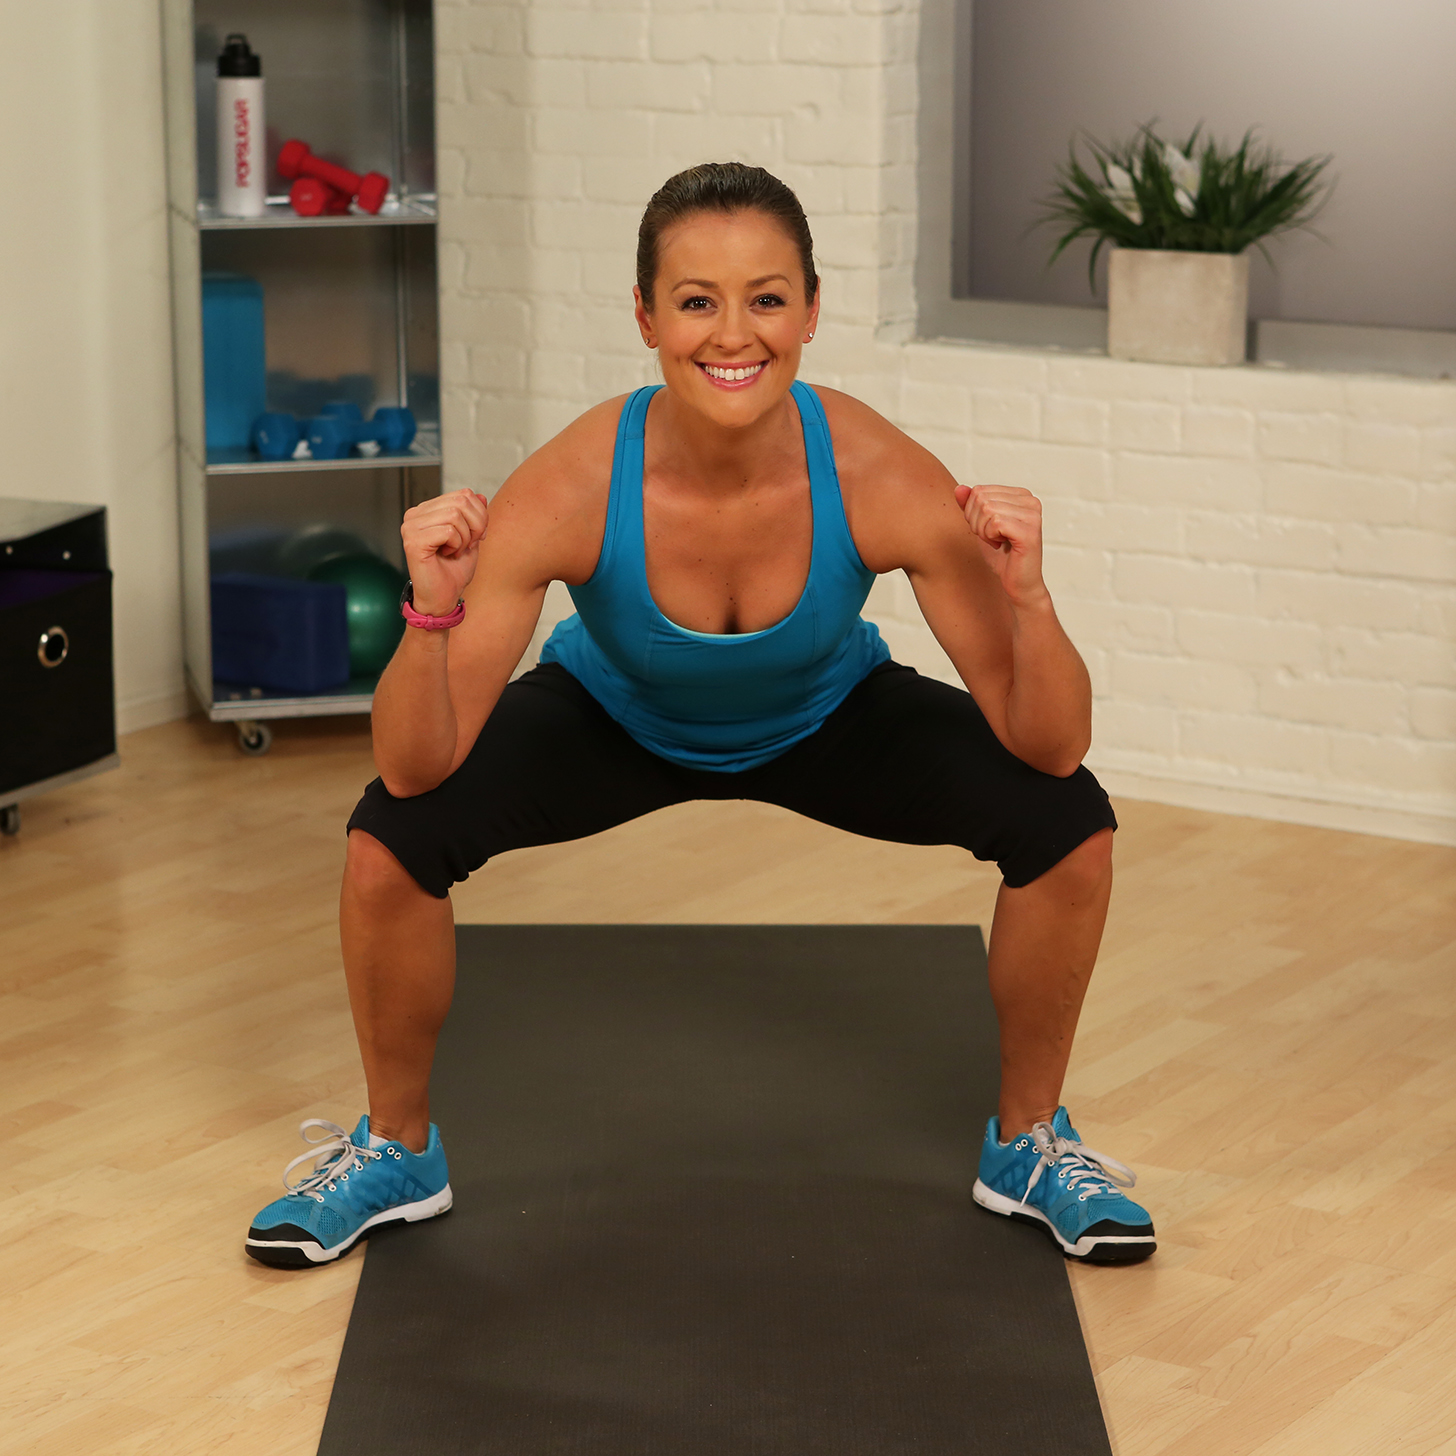 One minute fitness challenge gate swings popsugar